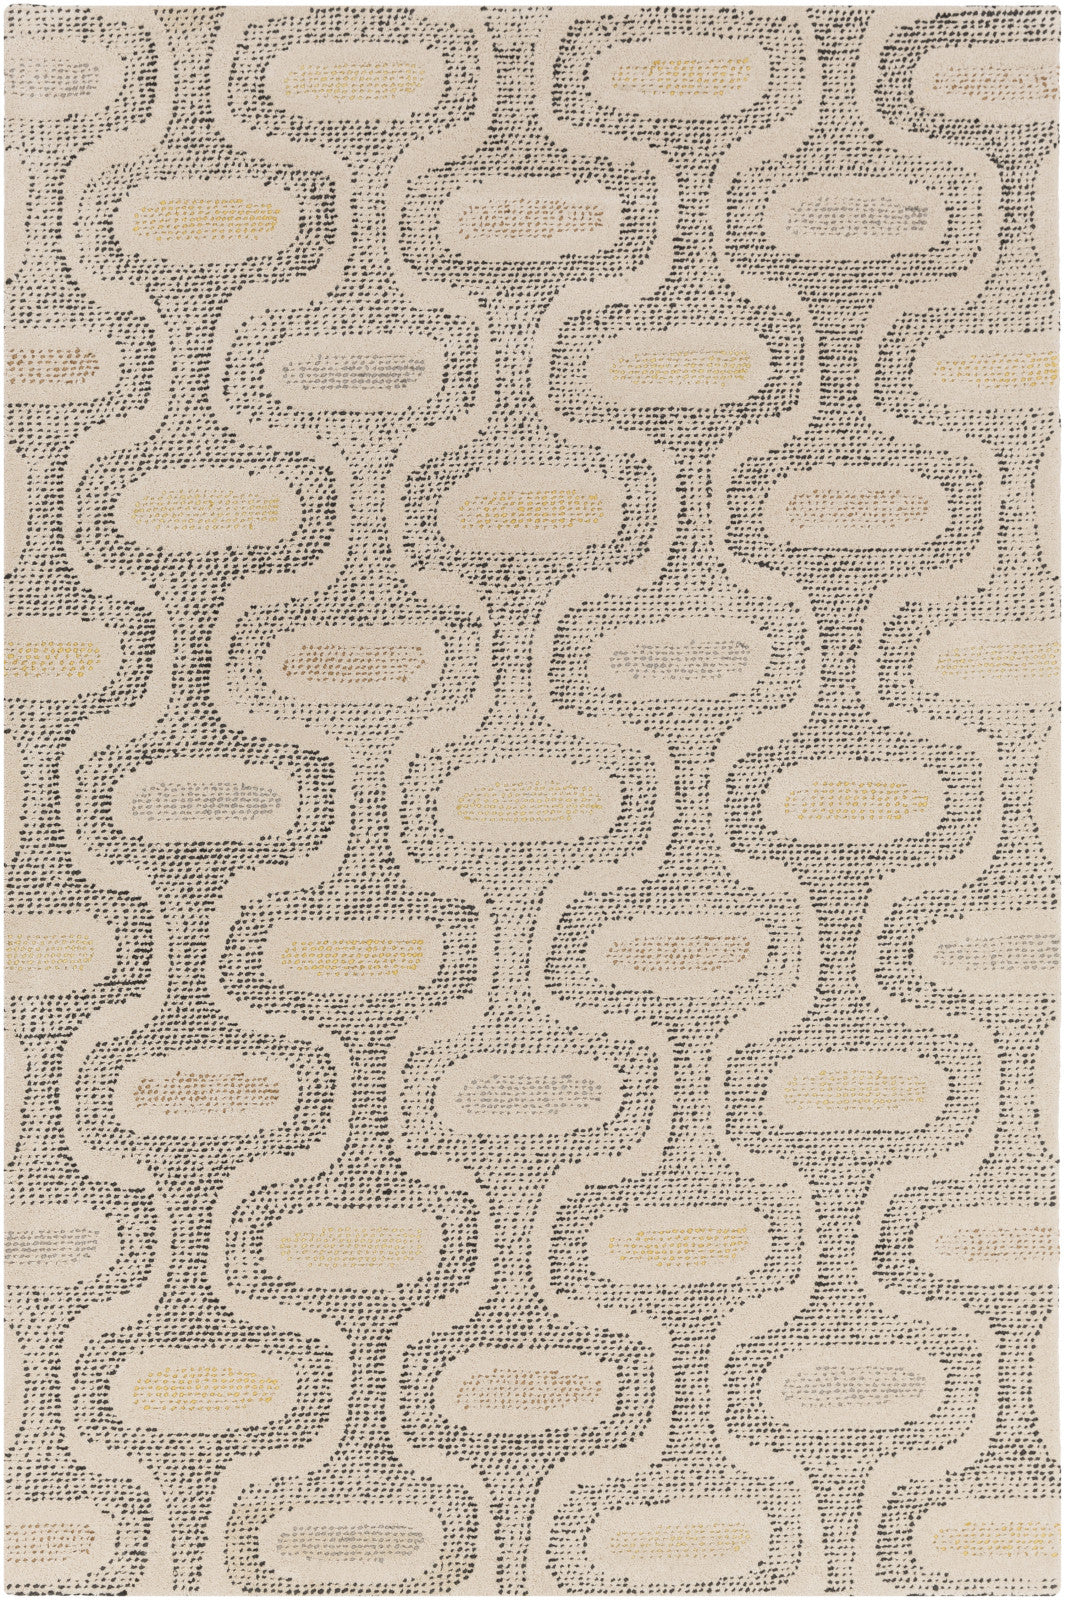 Melody MDY-2012 White Area Rug by Surya